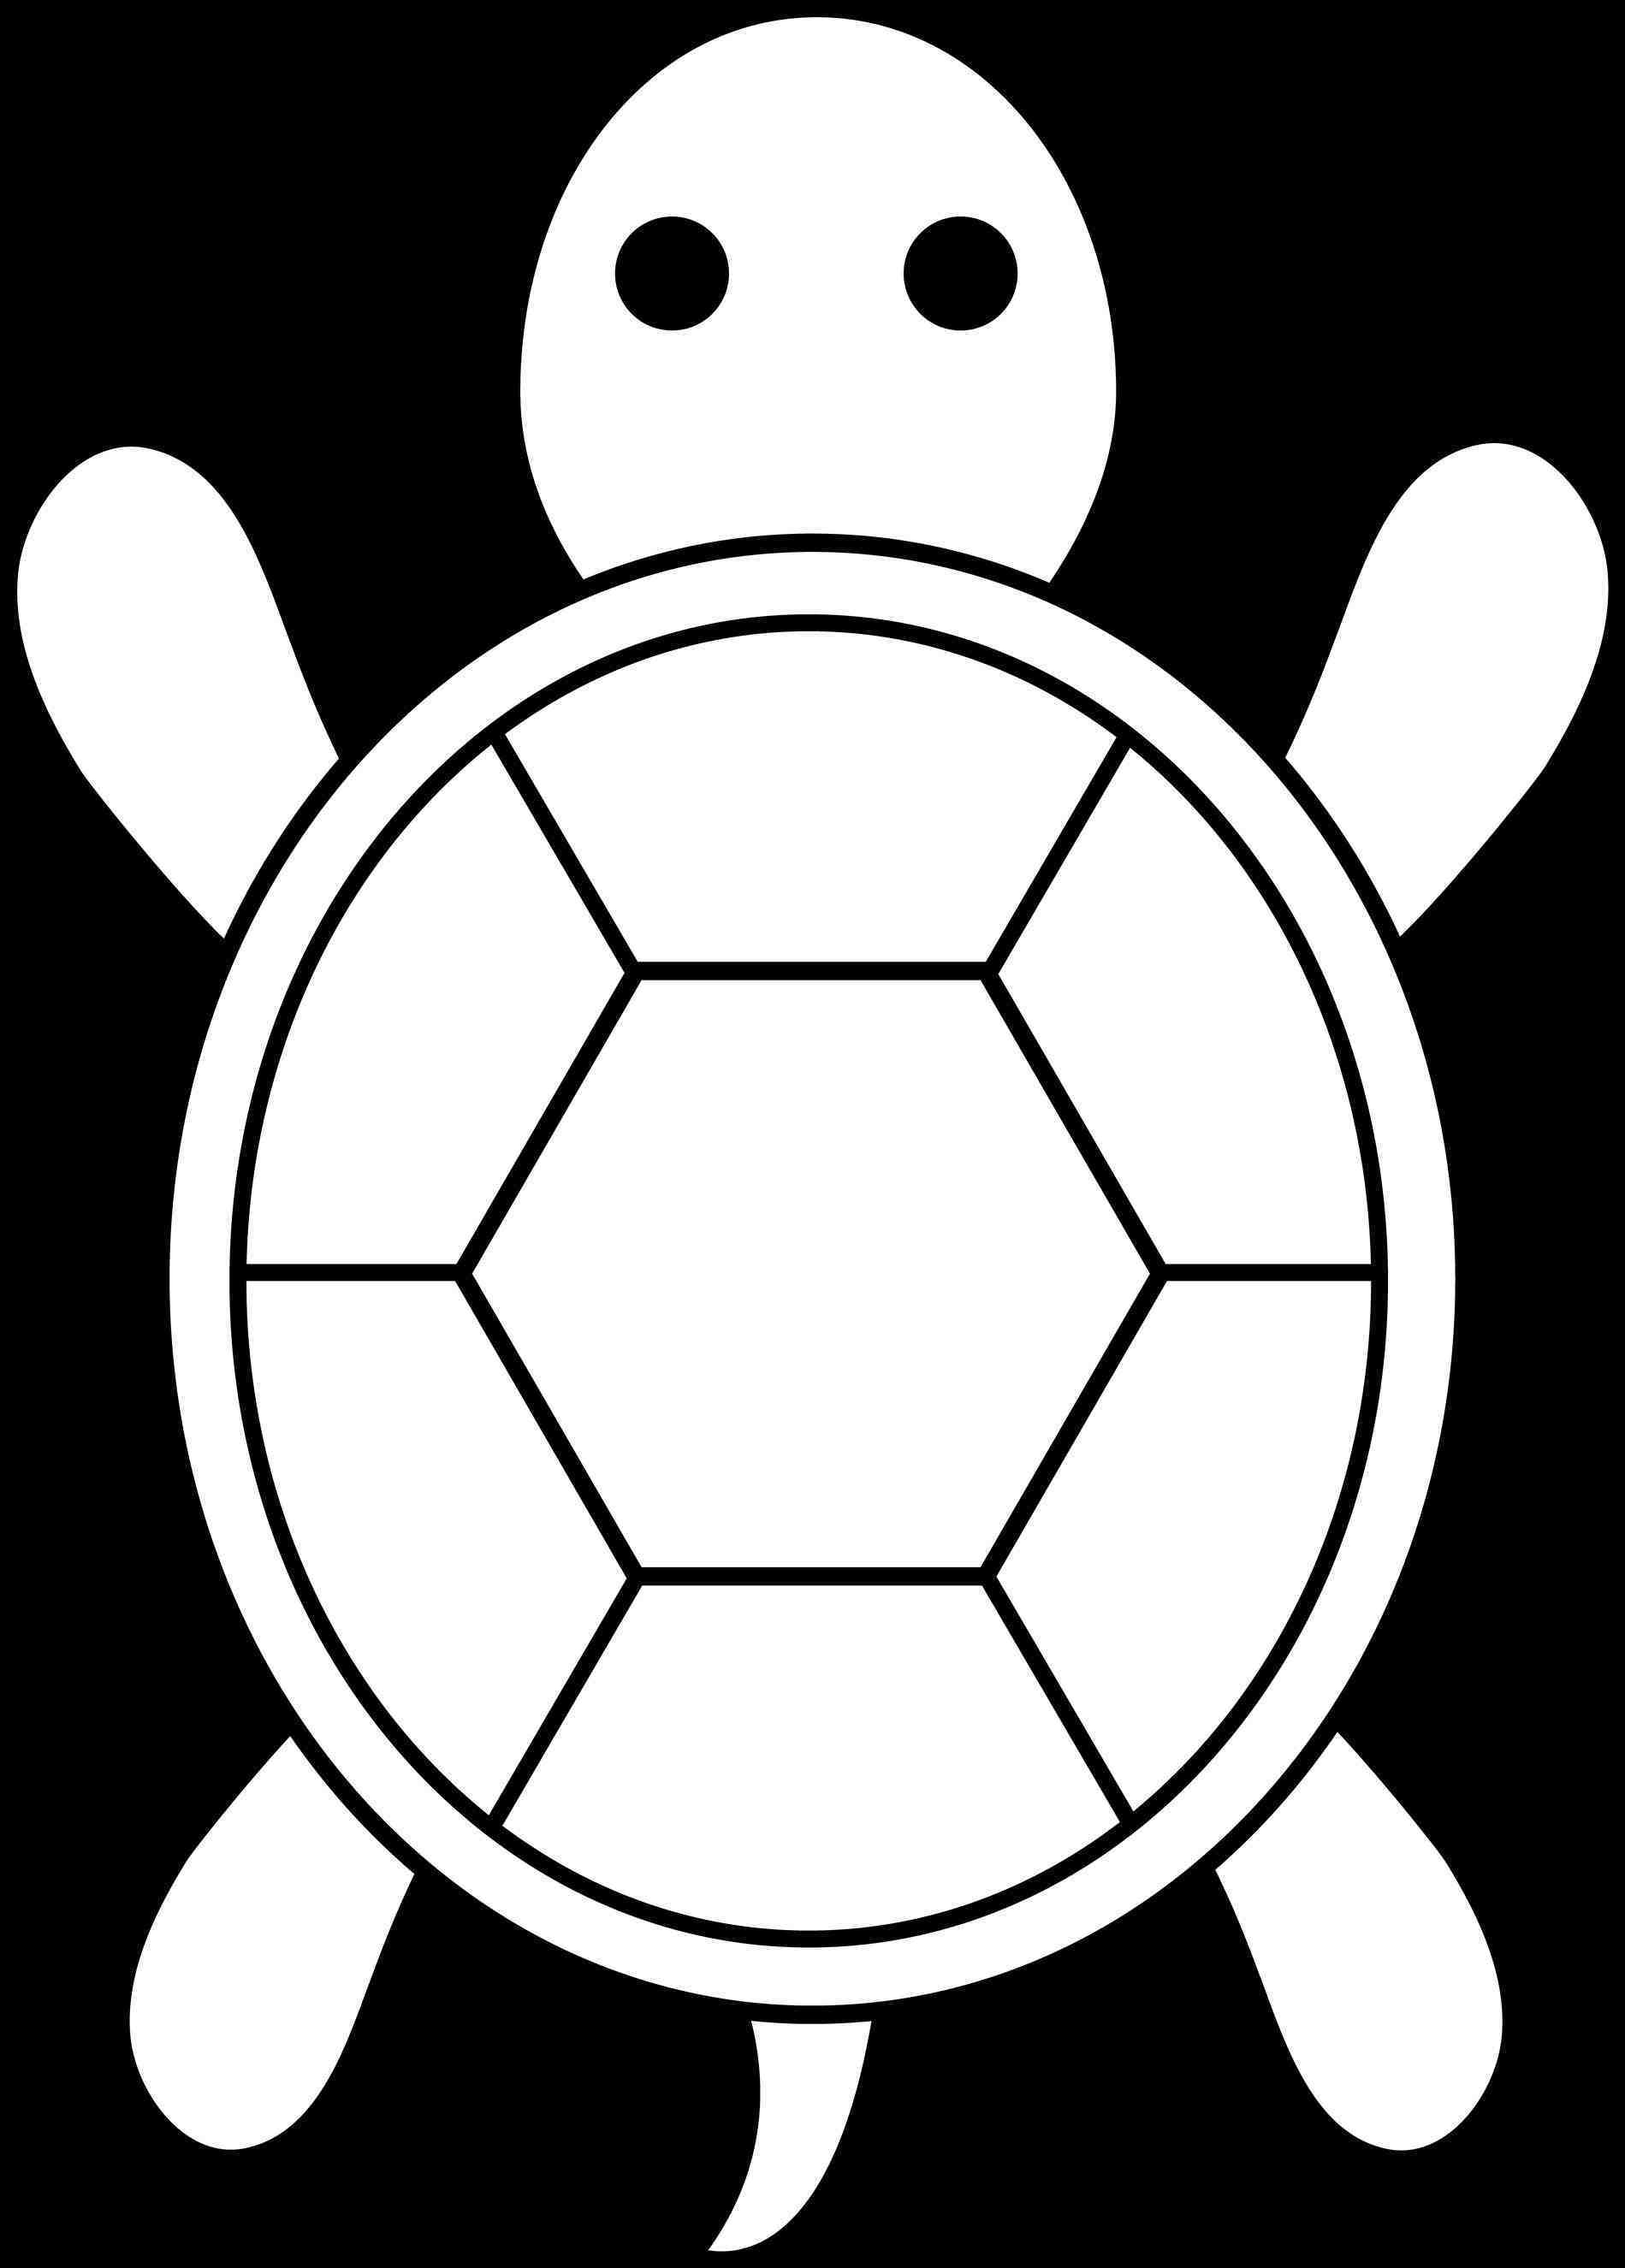 Turtle Shell Silhouette at GetDrawings | Free download